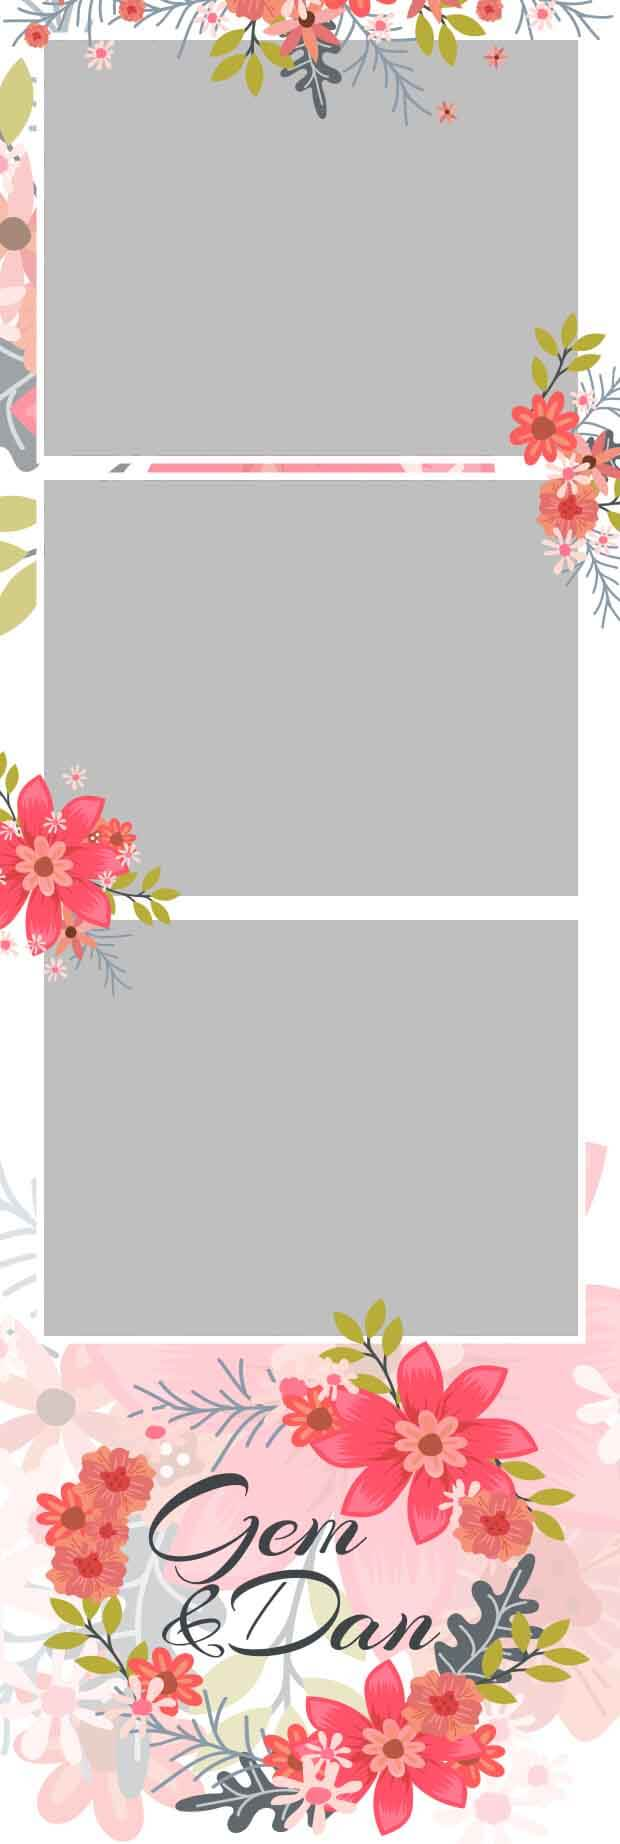 Photobooth Template Pink Flowers